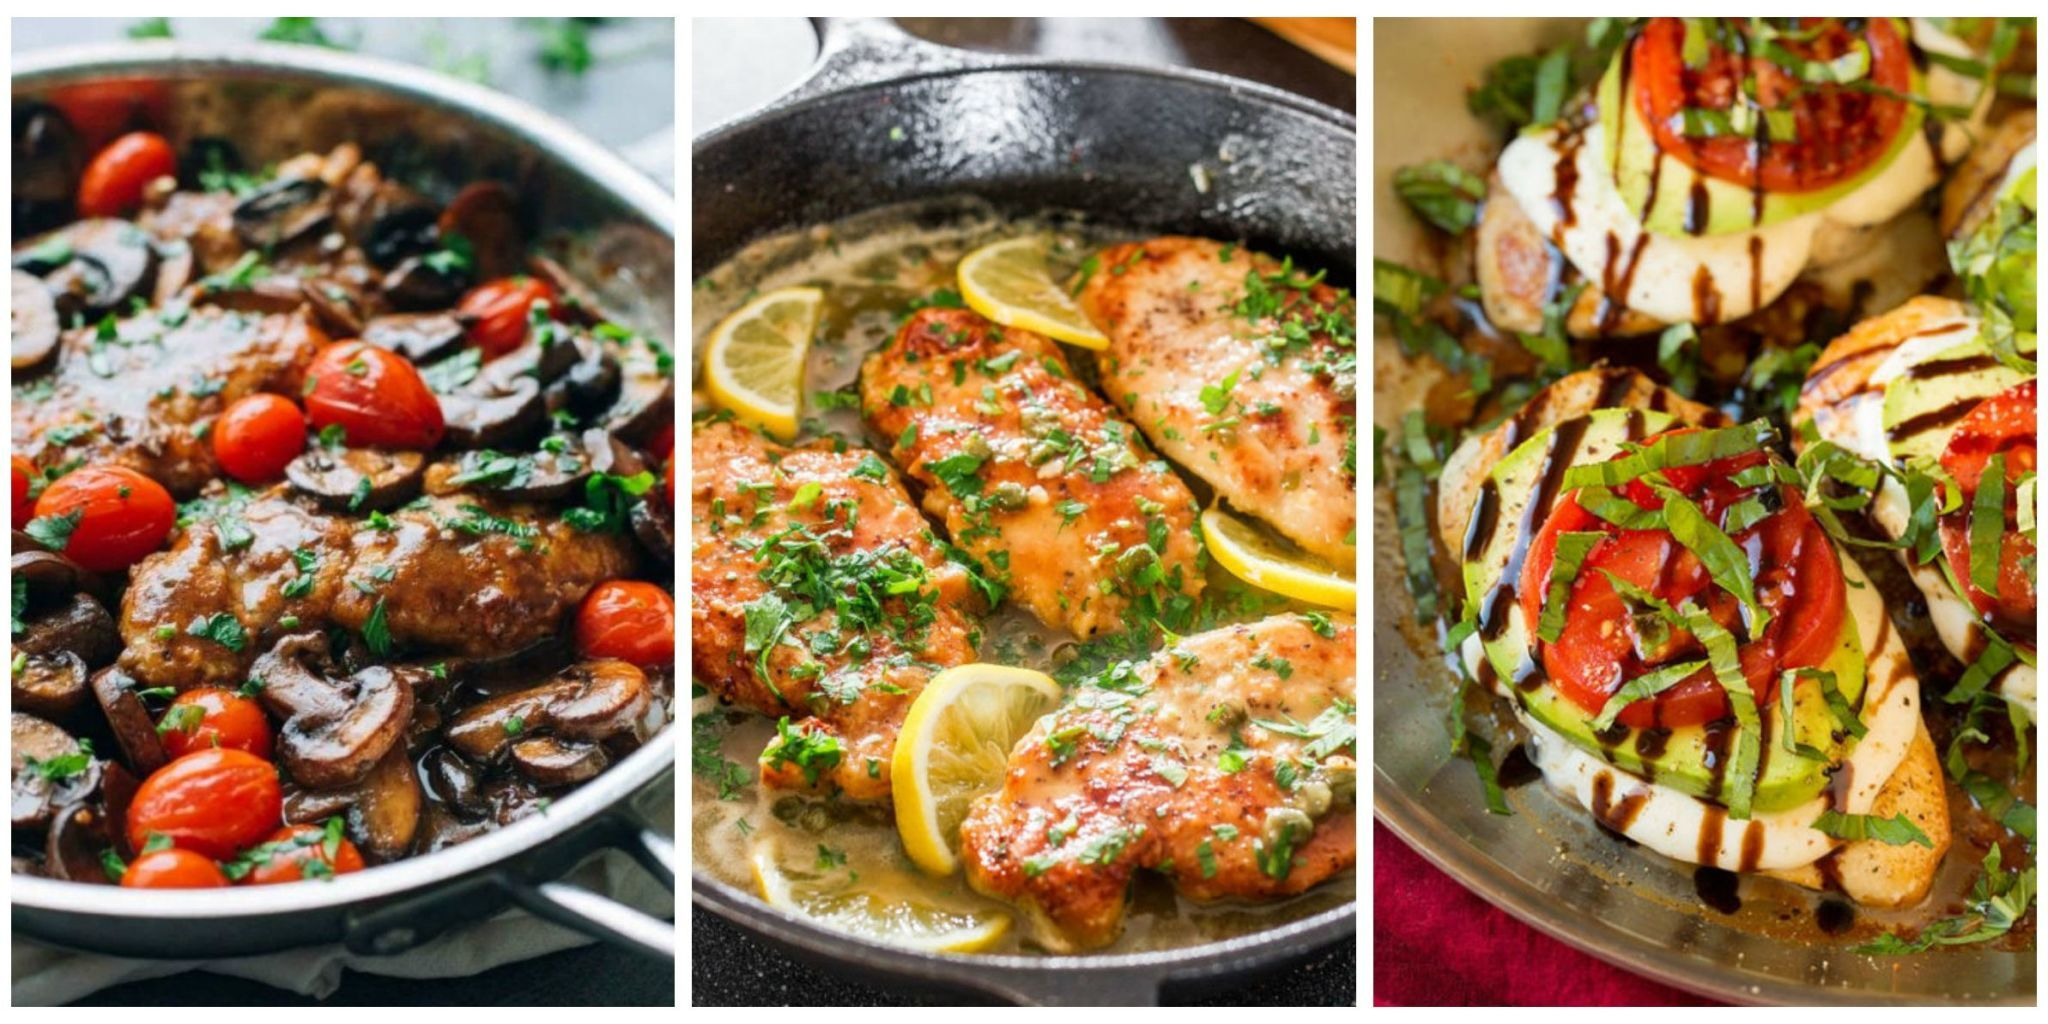 Enjoy these tasty chicken dinner recipes that take almost no time to prepare. & 17 Italian Chicken Recipes - Quick and Easy Chicken Dishes